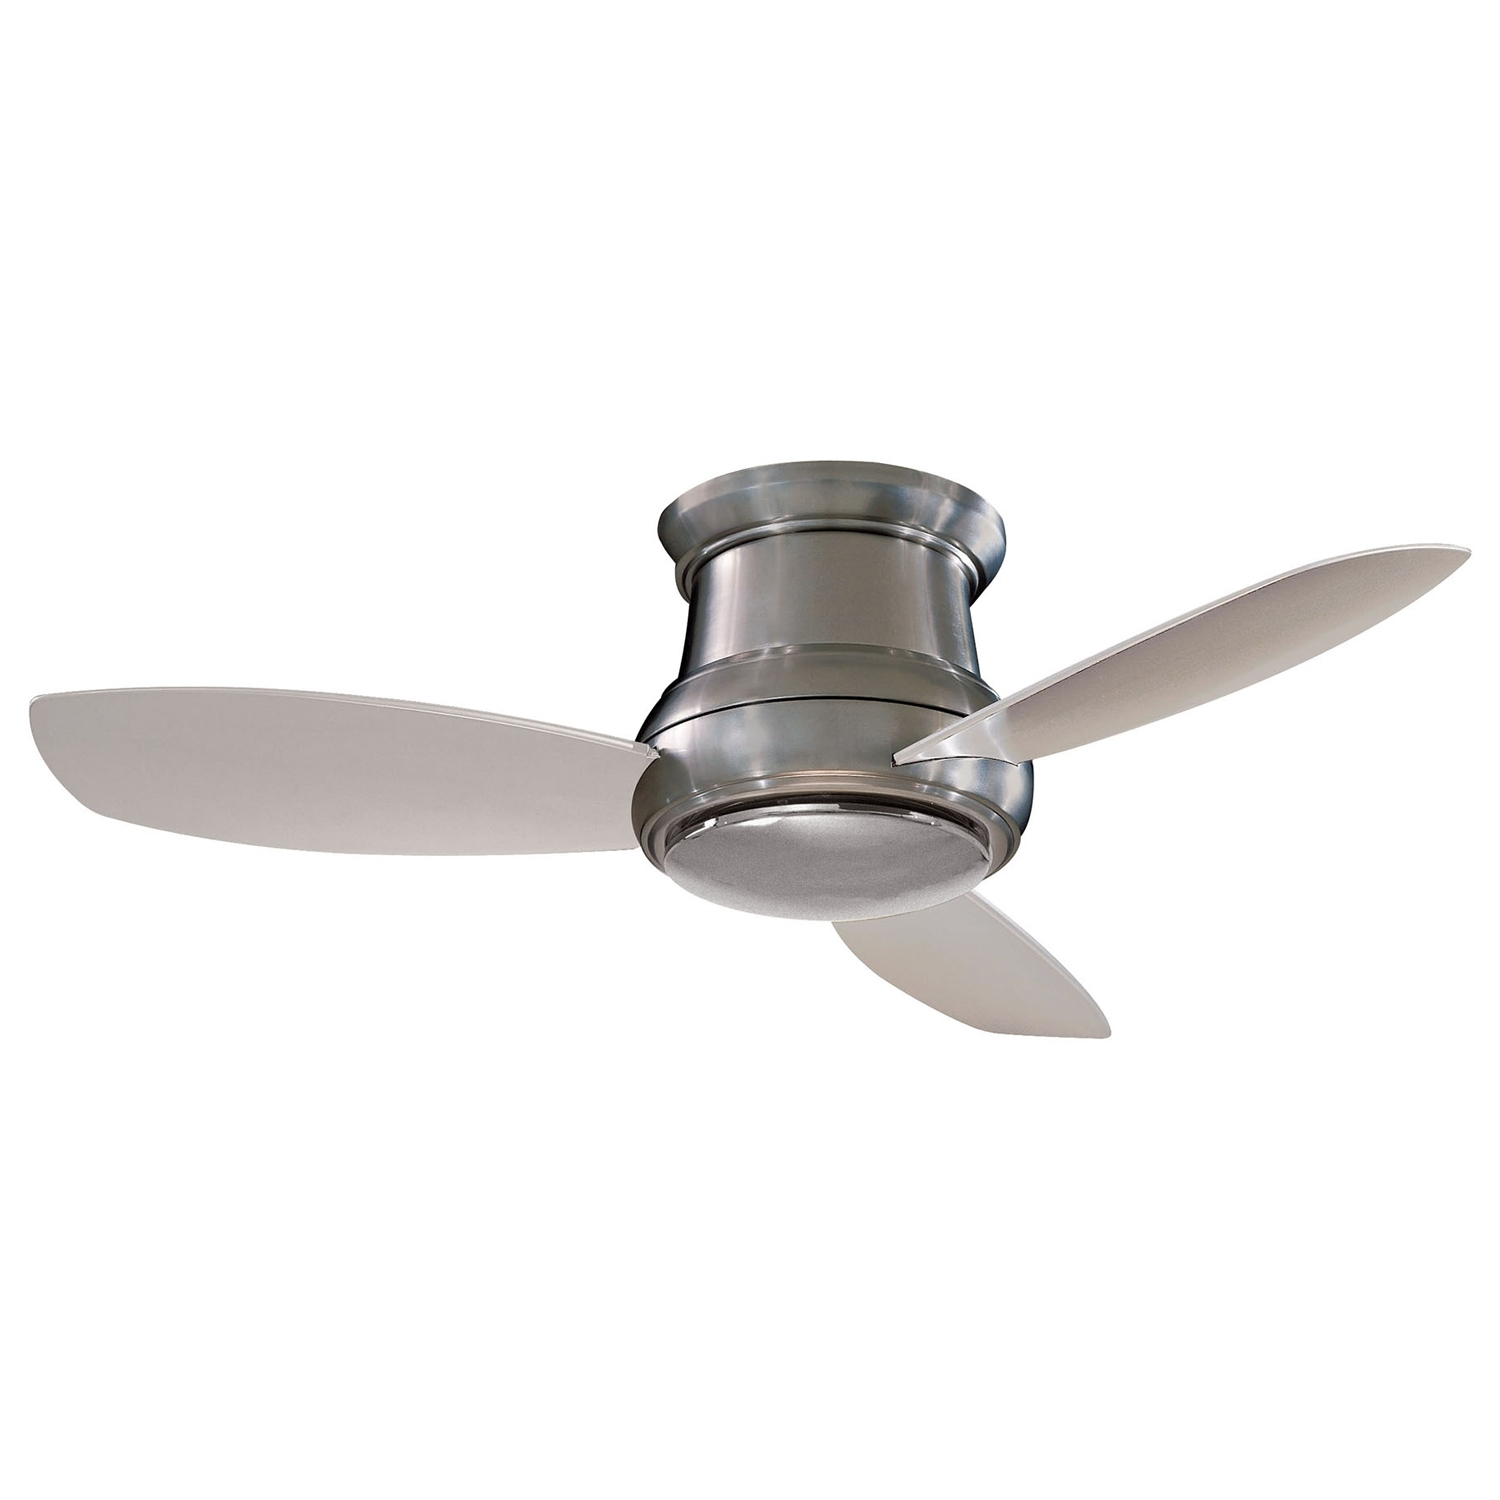 Most Popular Small Ceilin Amazing 36 Ceiling Fans With Lights Flush Mount Regarding 36 Inch Outdoor Ceiling Fans With Light Flush Mount (View 12 of 20)